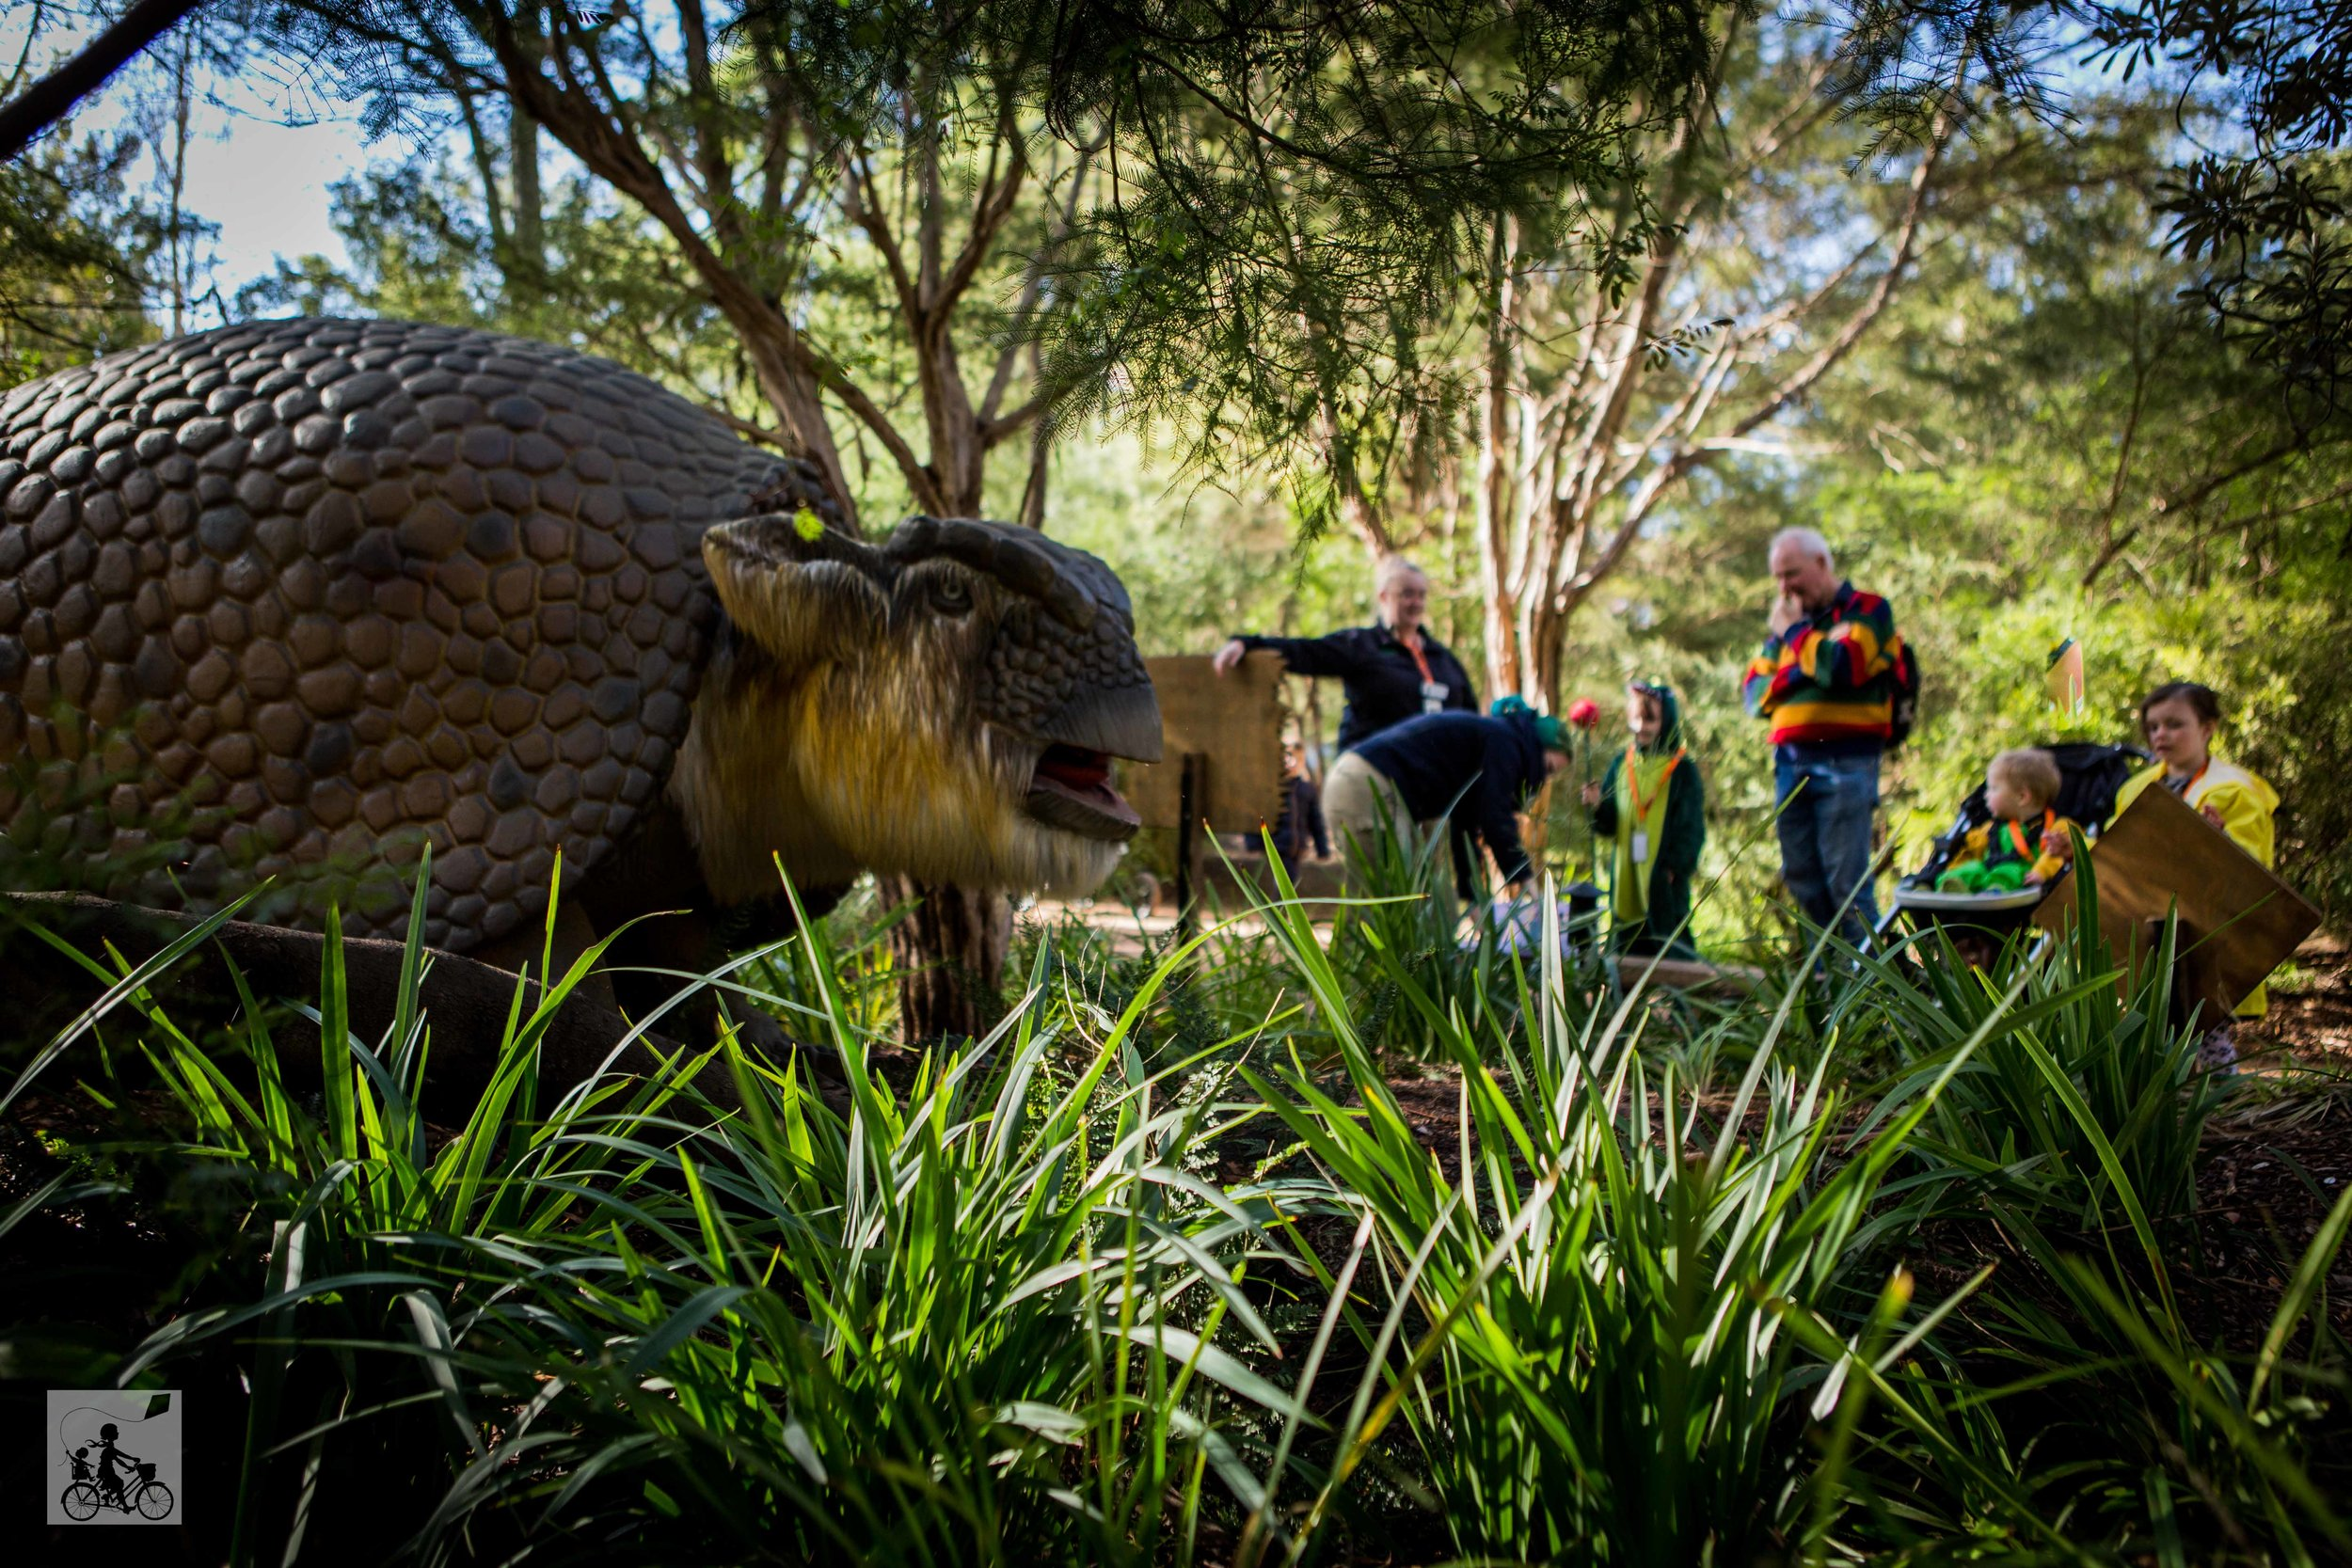 Mega Beasts Healesville Sanctuary - Mamma Knows East (22 of 36).jpg